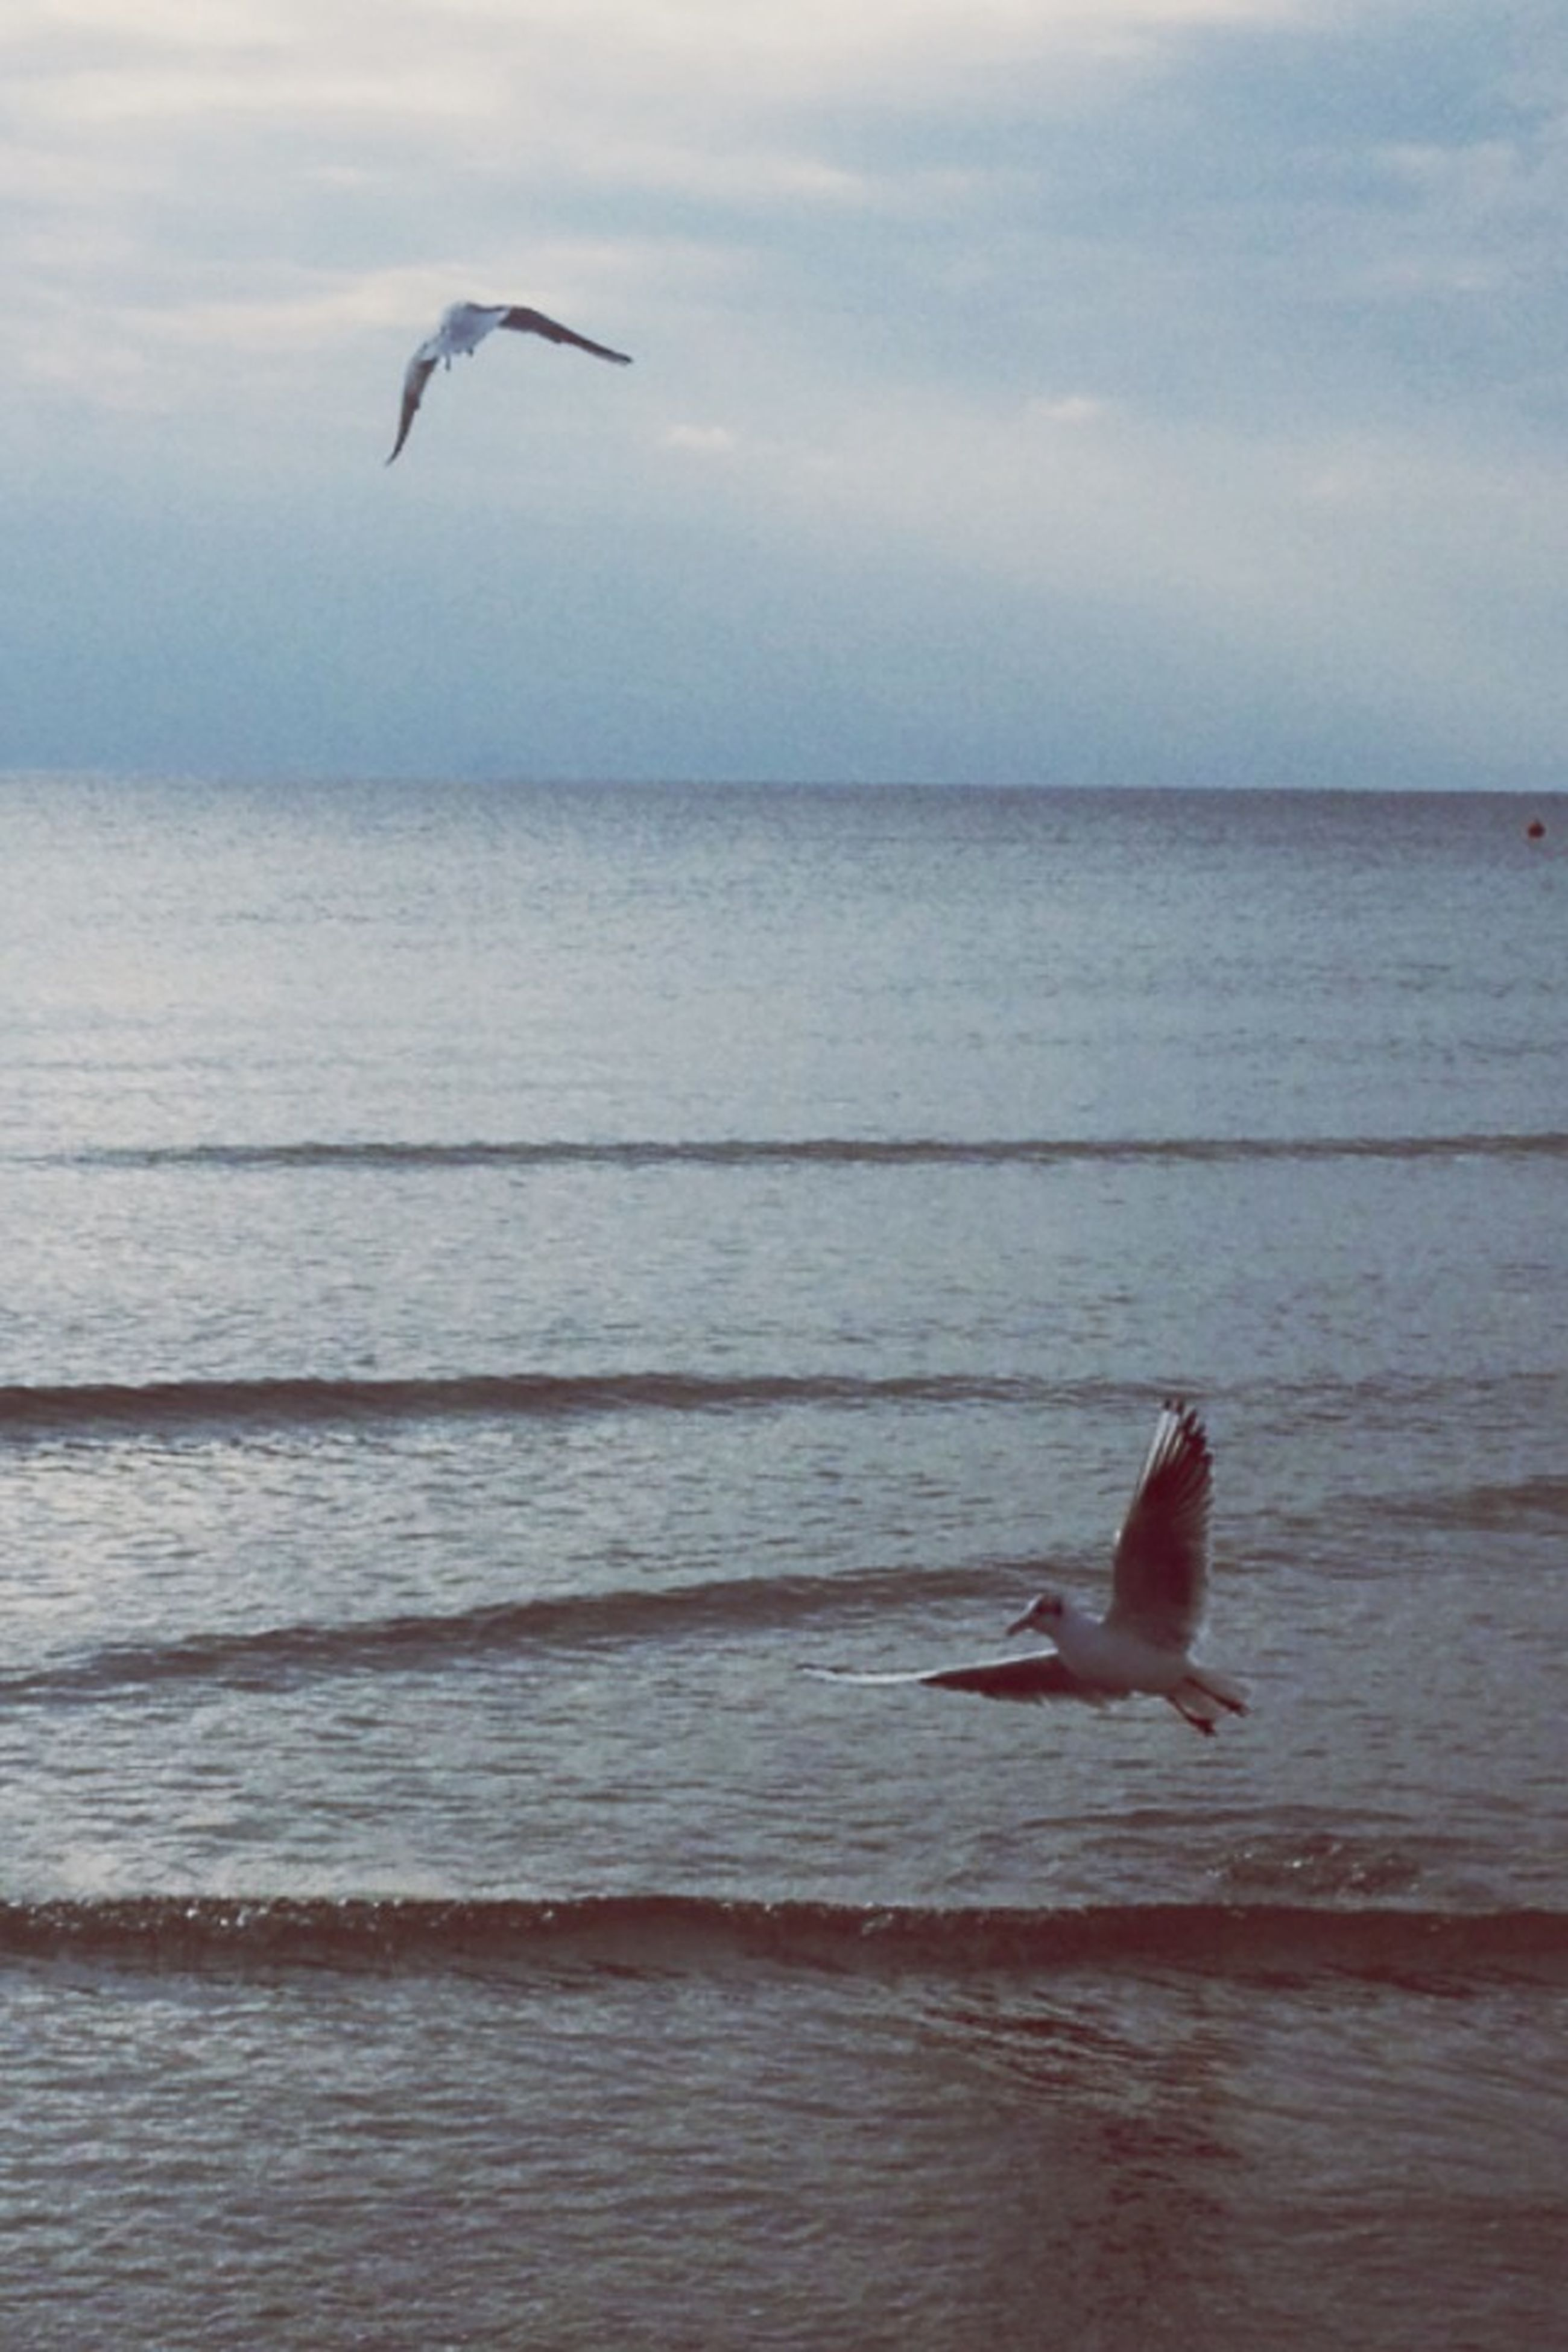 bird, animal themes, animals in the wild, flying, wildlife, sea, spread wings, water, seagull, horizon over water, sky, one animal, mid-air, nature, beauty in nature, beach, tranquil scene, scenics, tranquility, motion